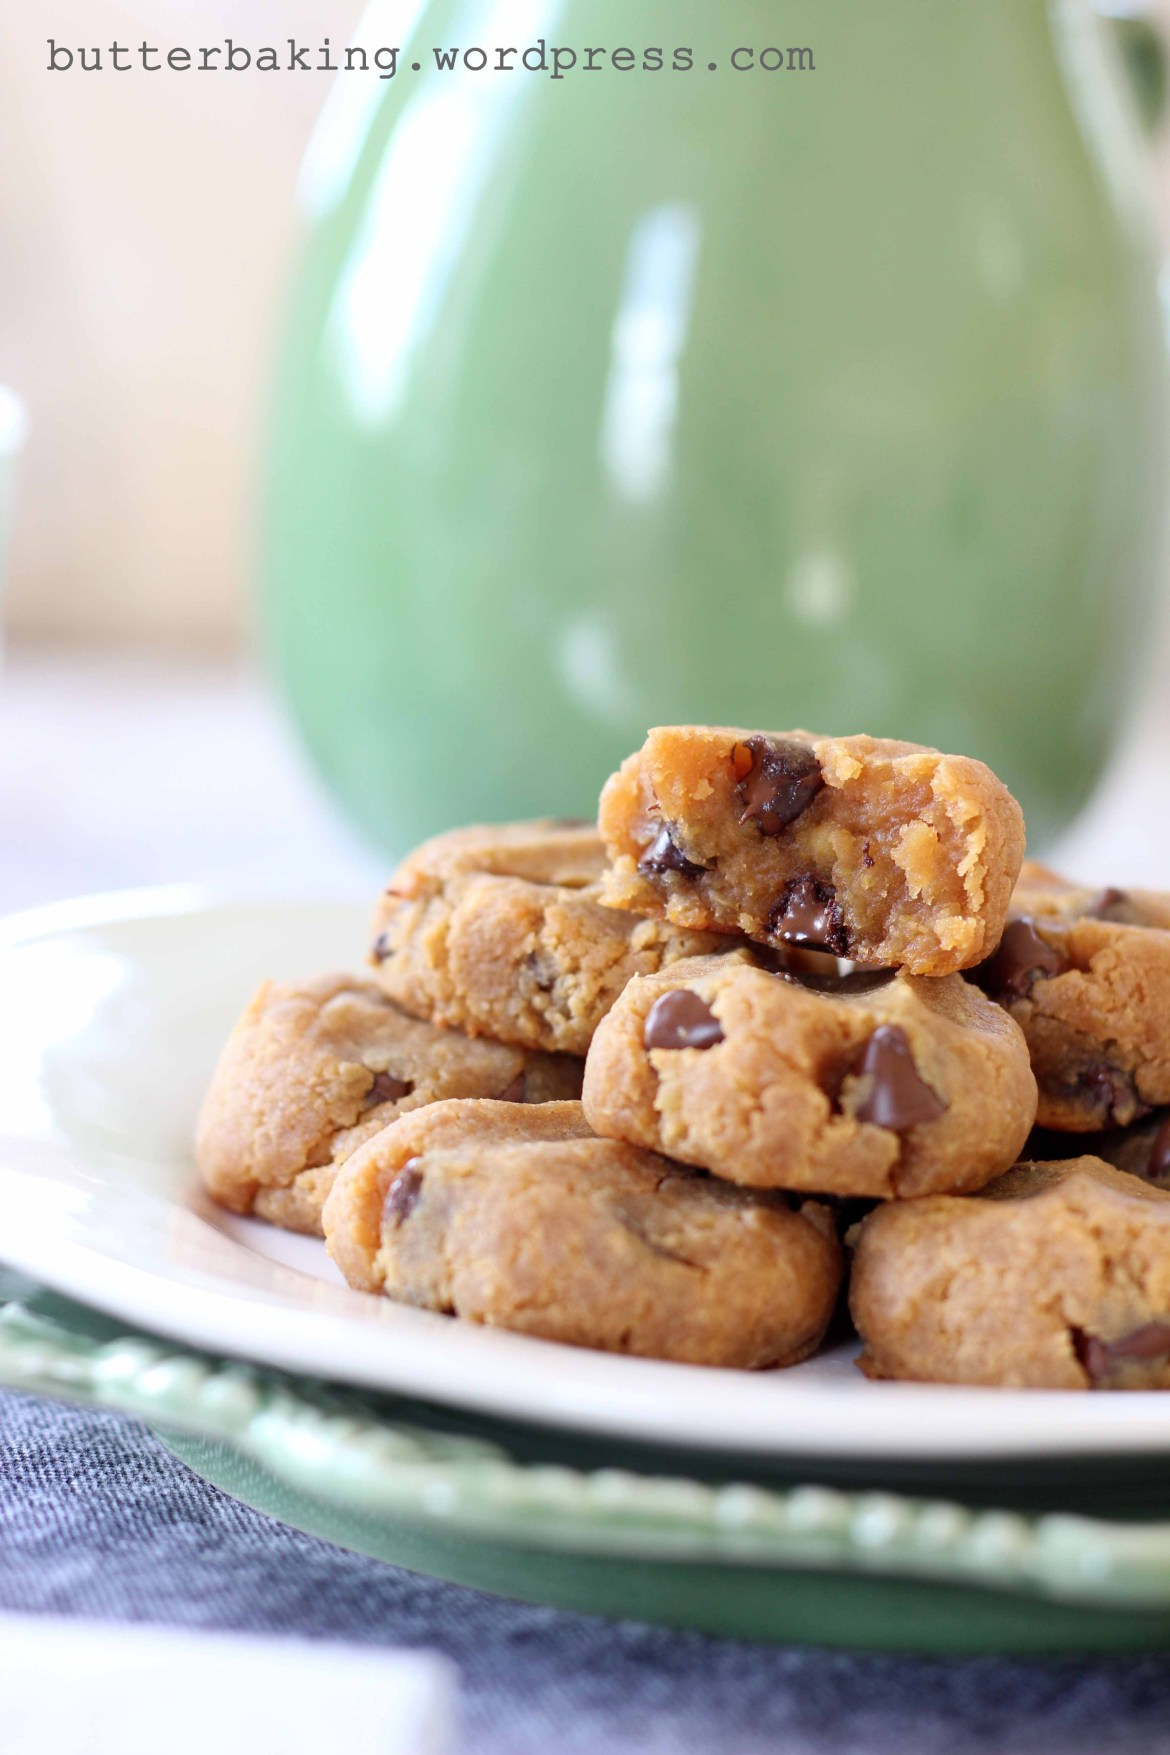 Healthy Protein Peanut Butter Chocolate Chip Cookie Dough Balls   Butter Baking